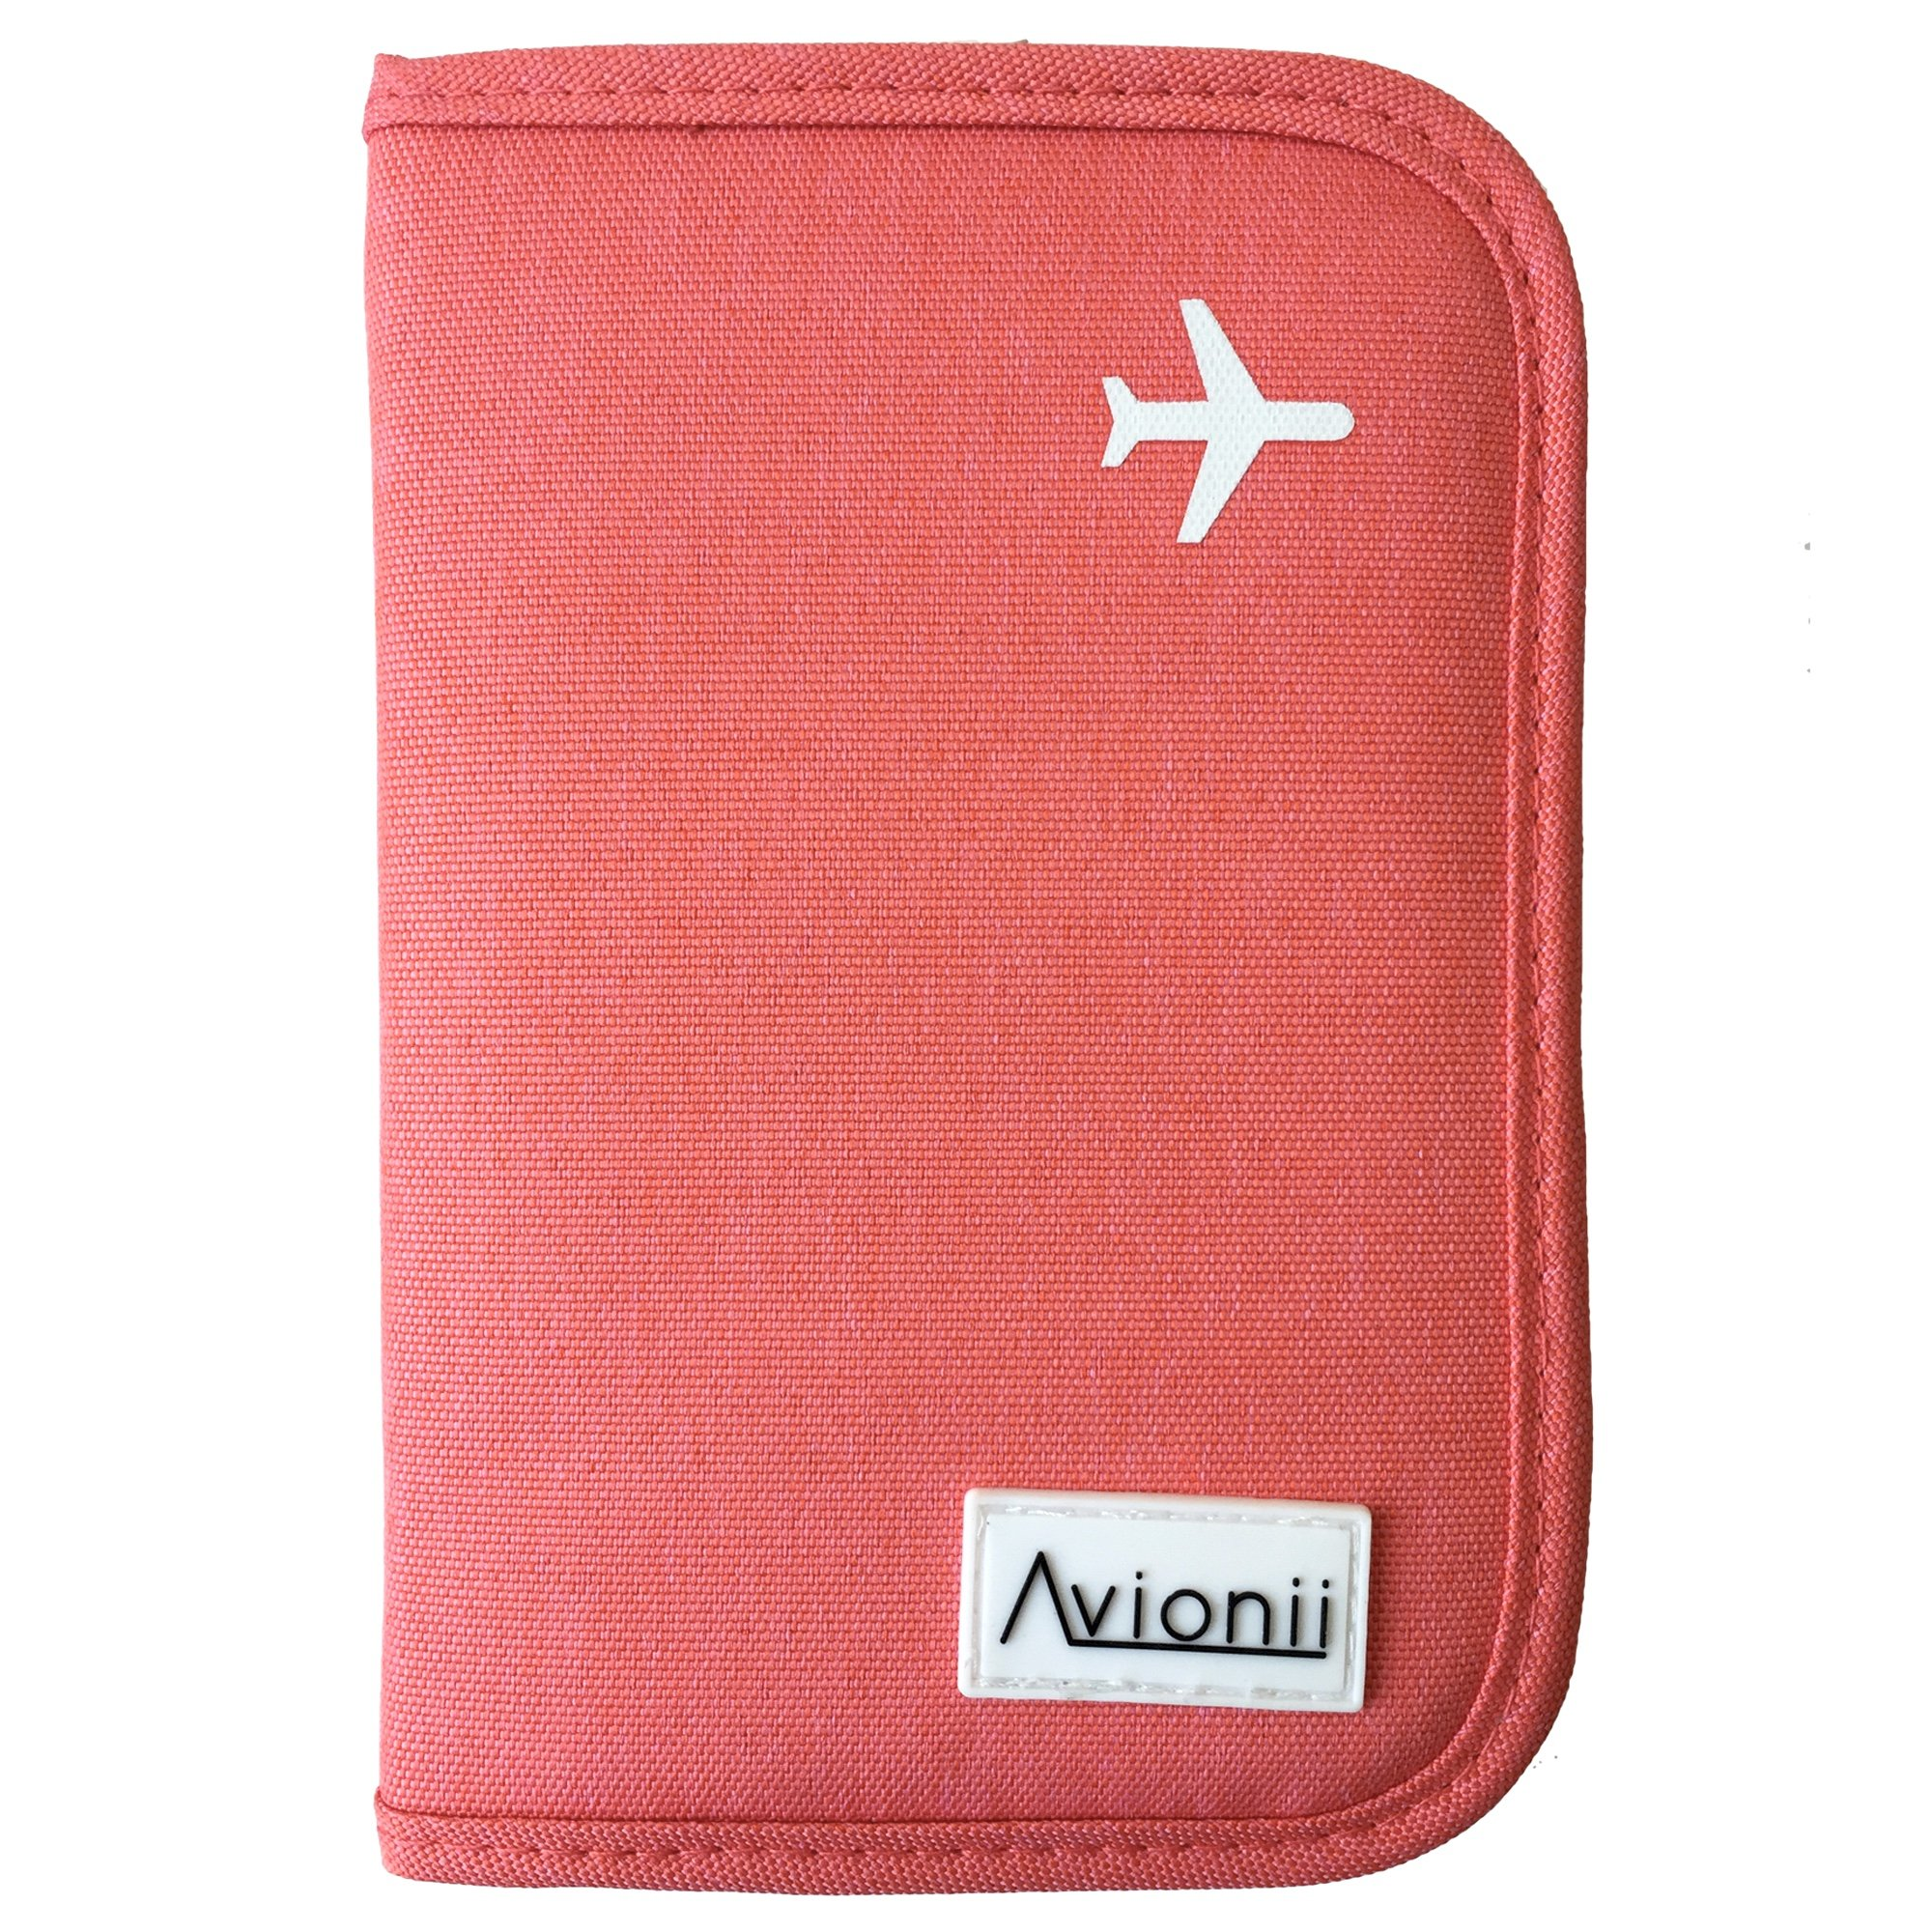 Passport Holder/Travel Wallet w/RFID Blocking for Men Women - 2018 New (Pink)